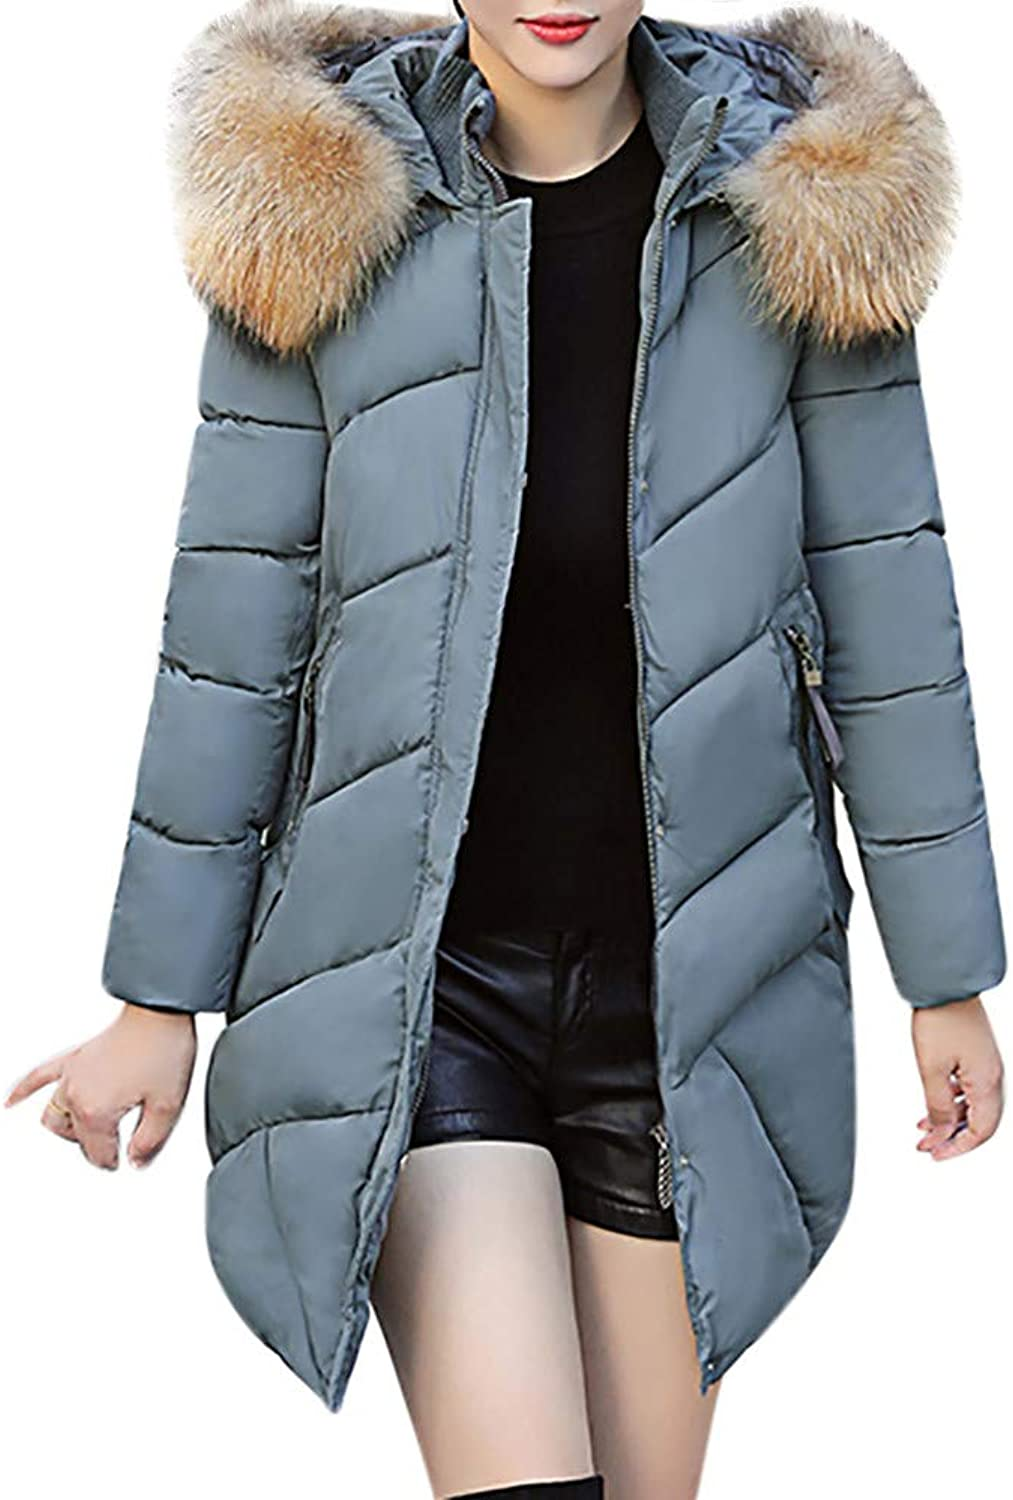 DaySeventh Women Hooded Outwear Warm Coat Long Thick Fur Collar Cotton Parka Slim Jacket